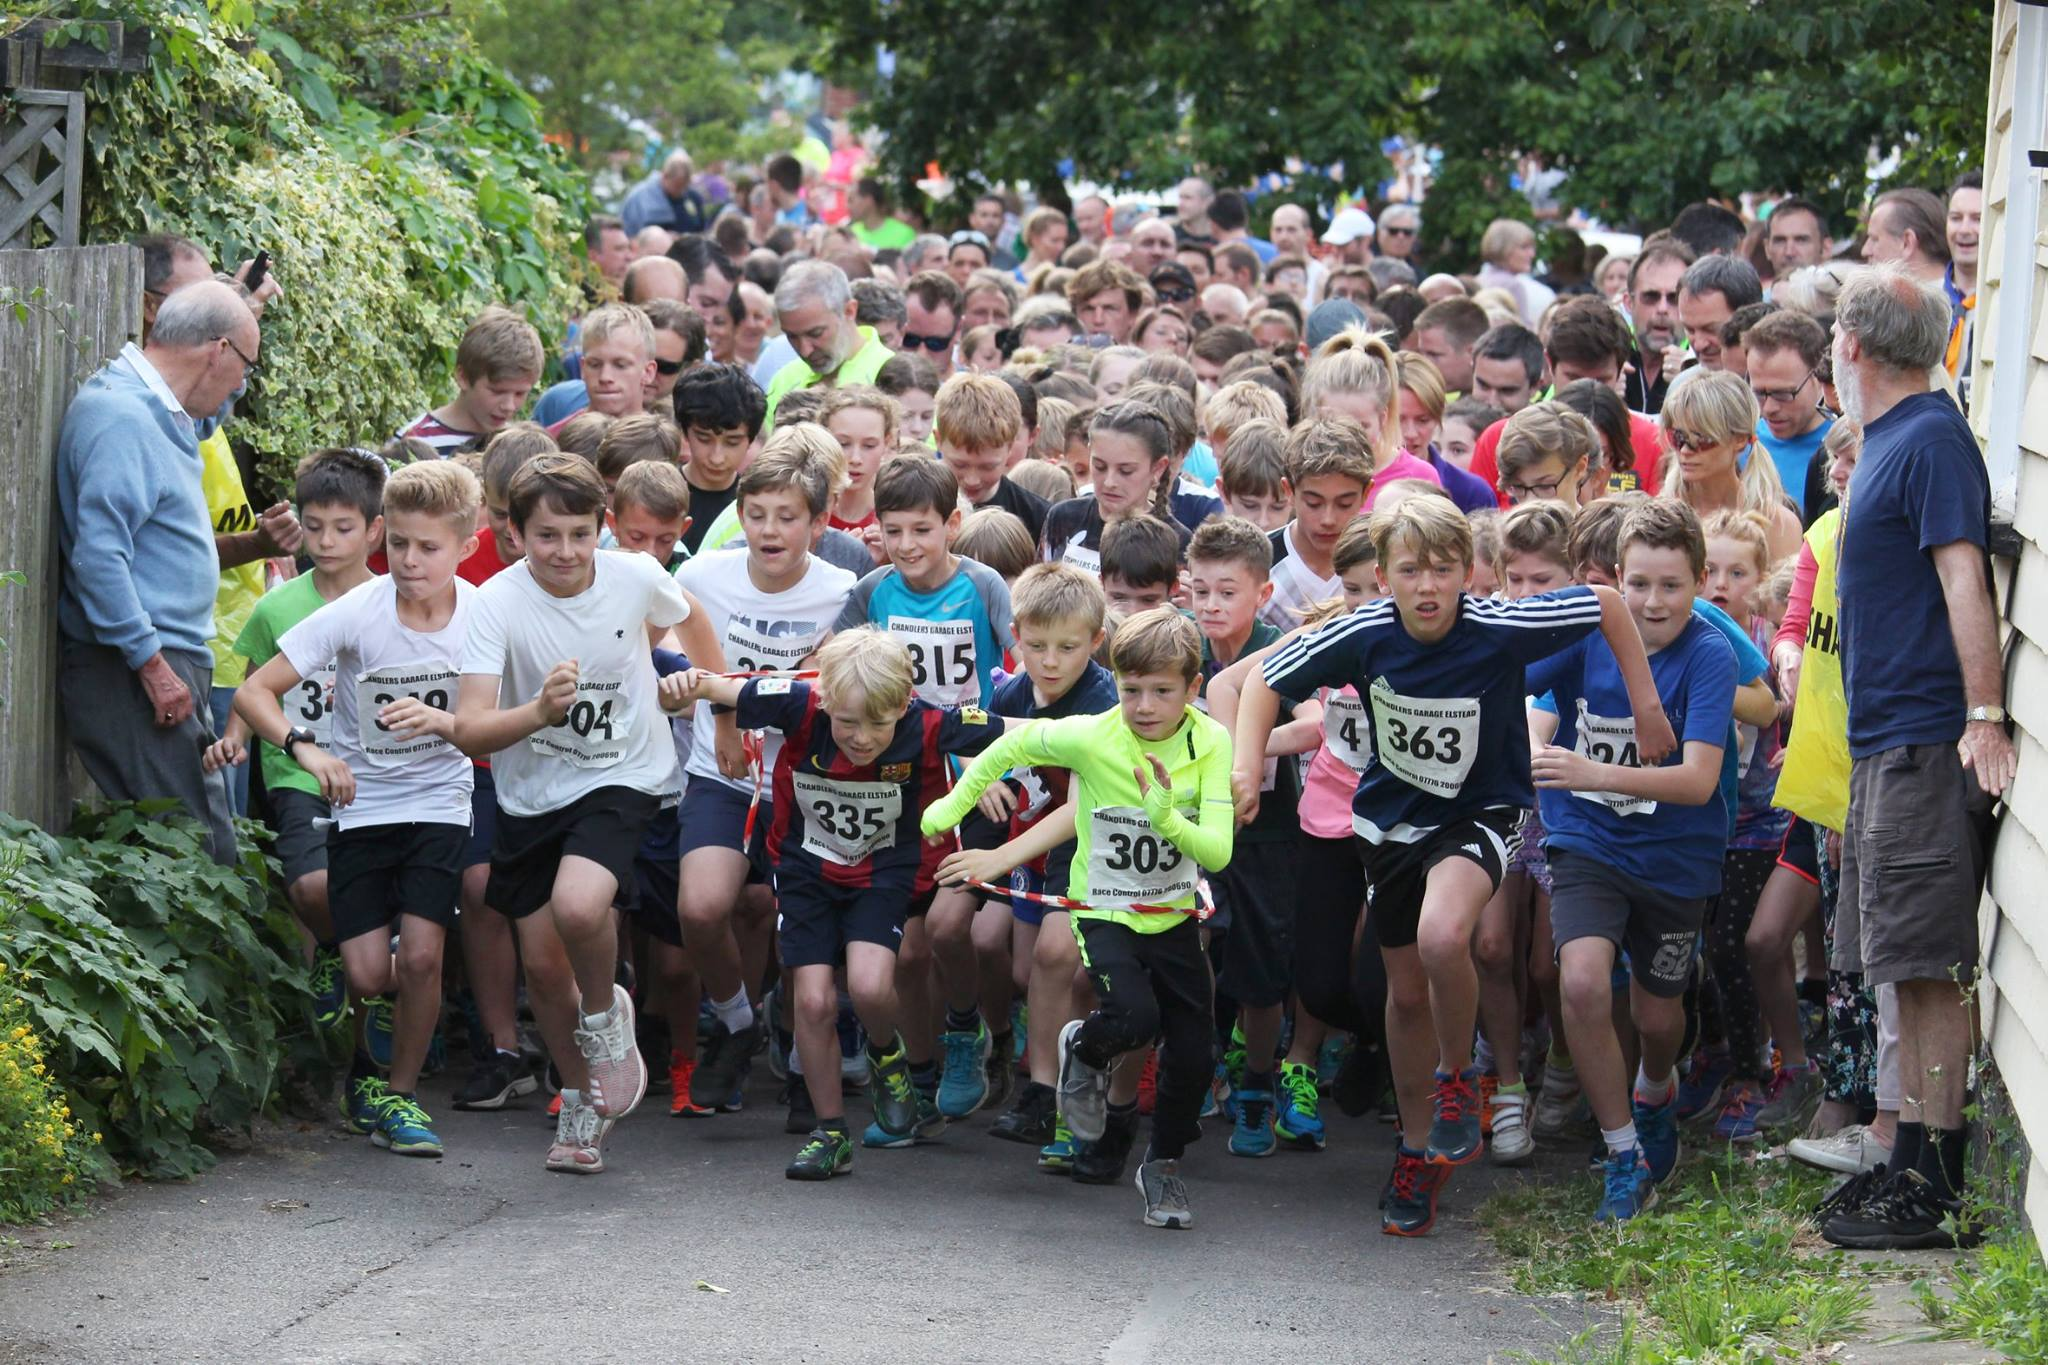 Lots of children starting the Elstead Marathon, with numbers on their shirts and keen to go.